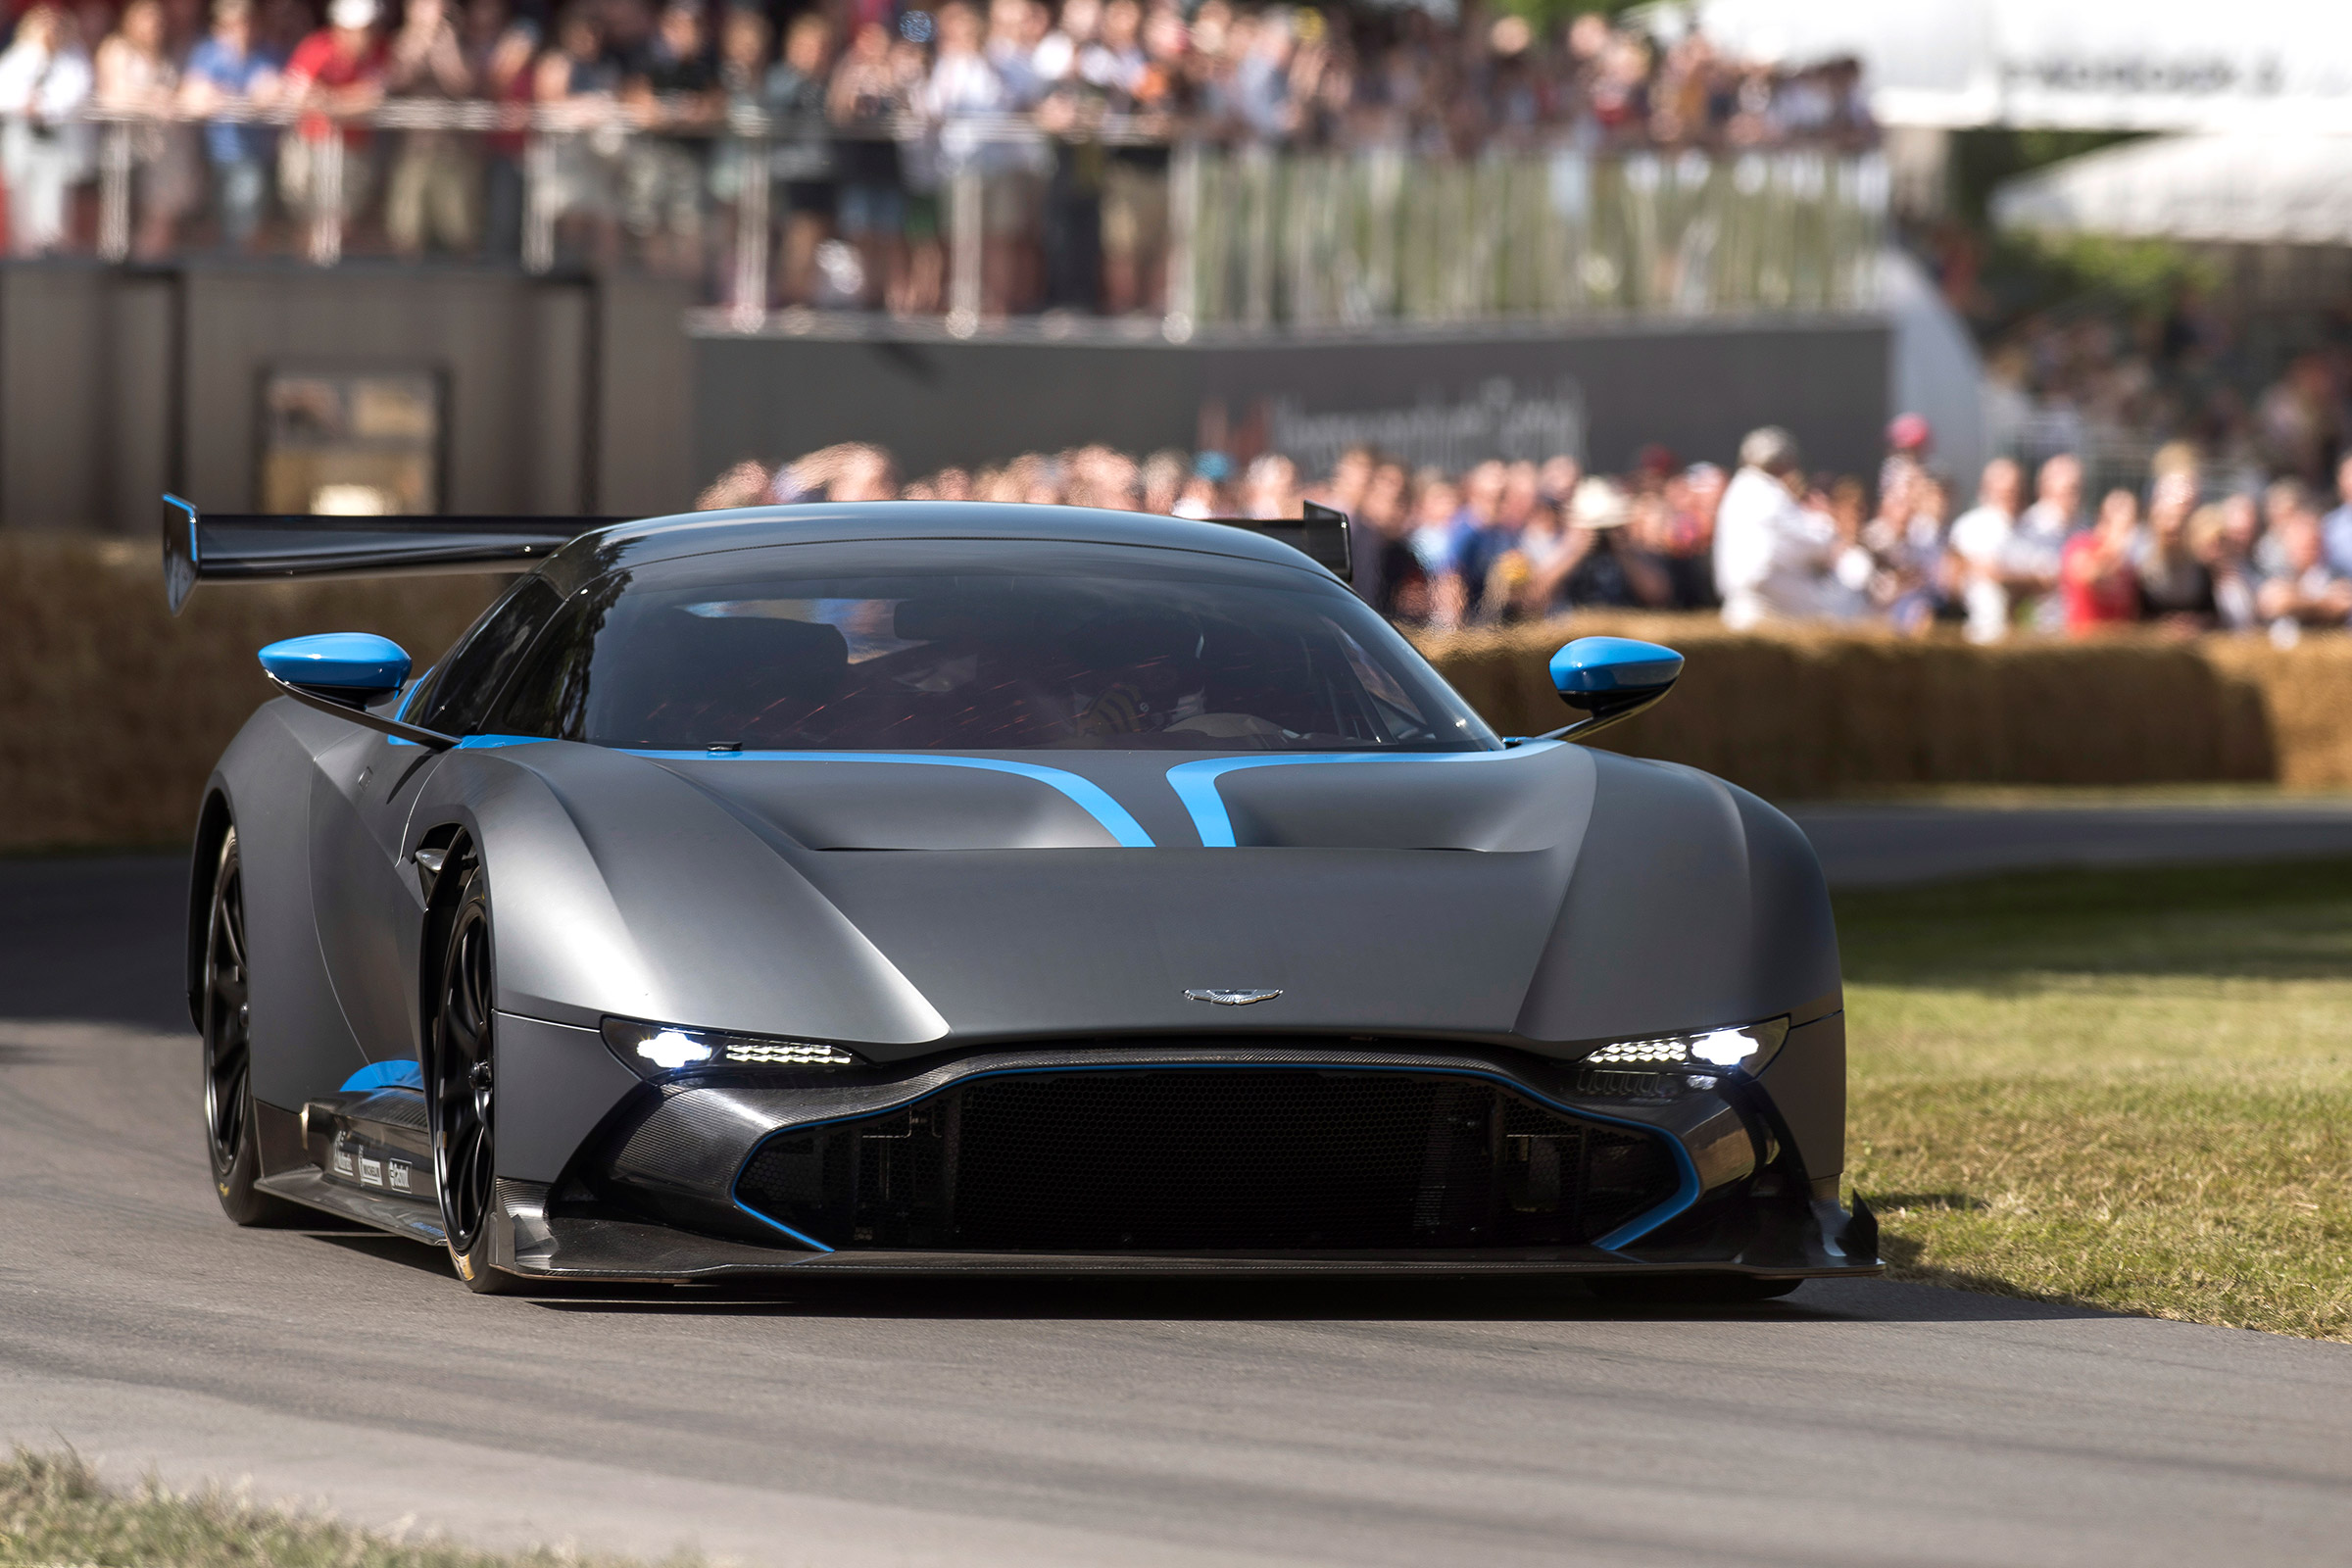 Aston Martin Vulcan Review Track Only Aston Reviewed At Blyton Park Evo